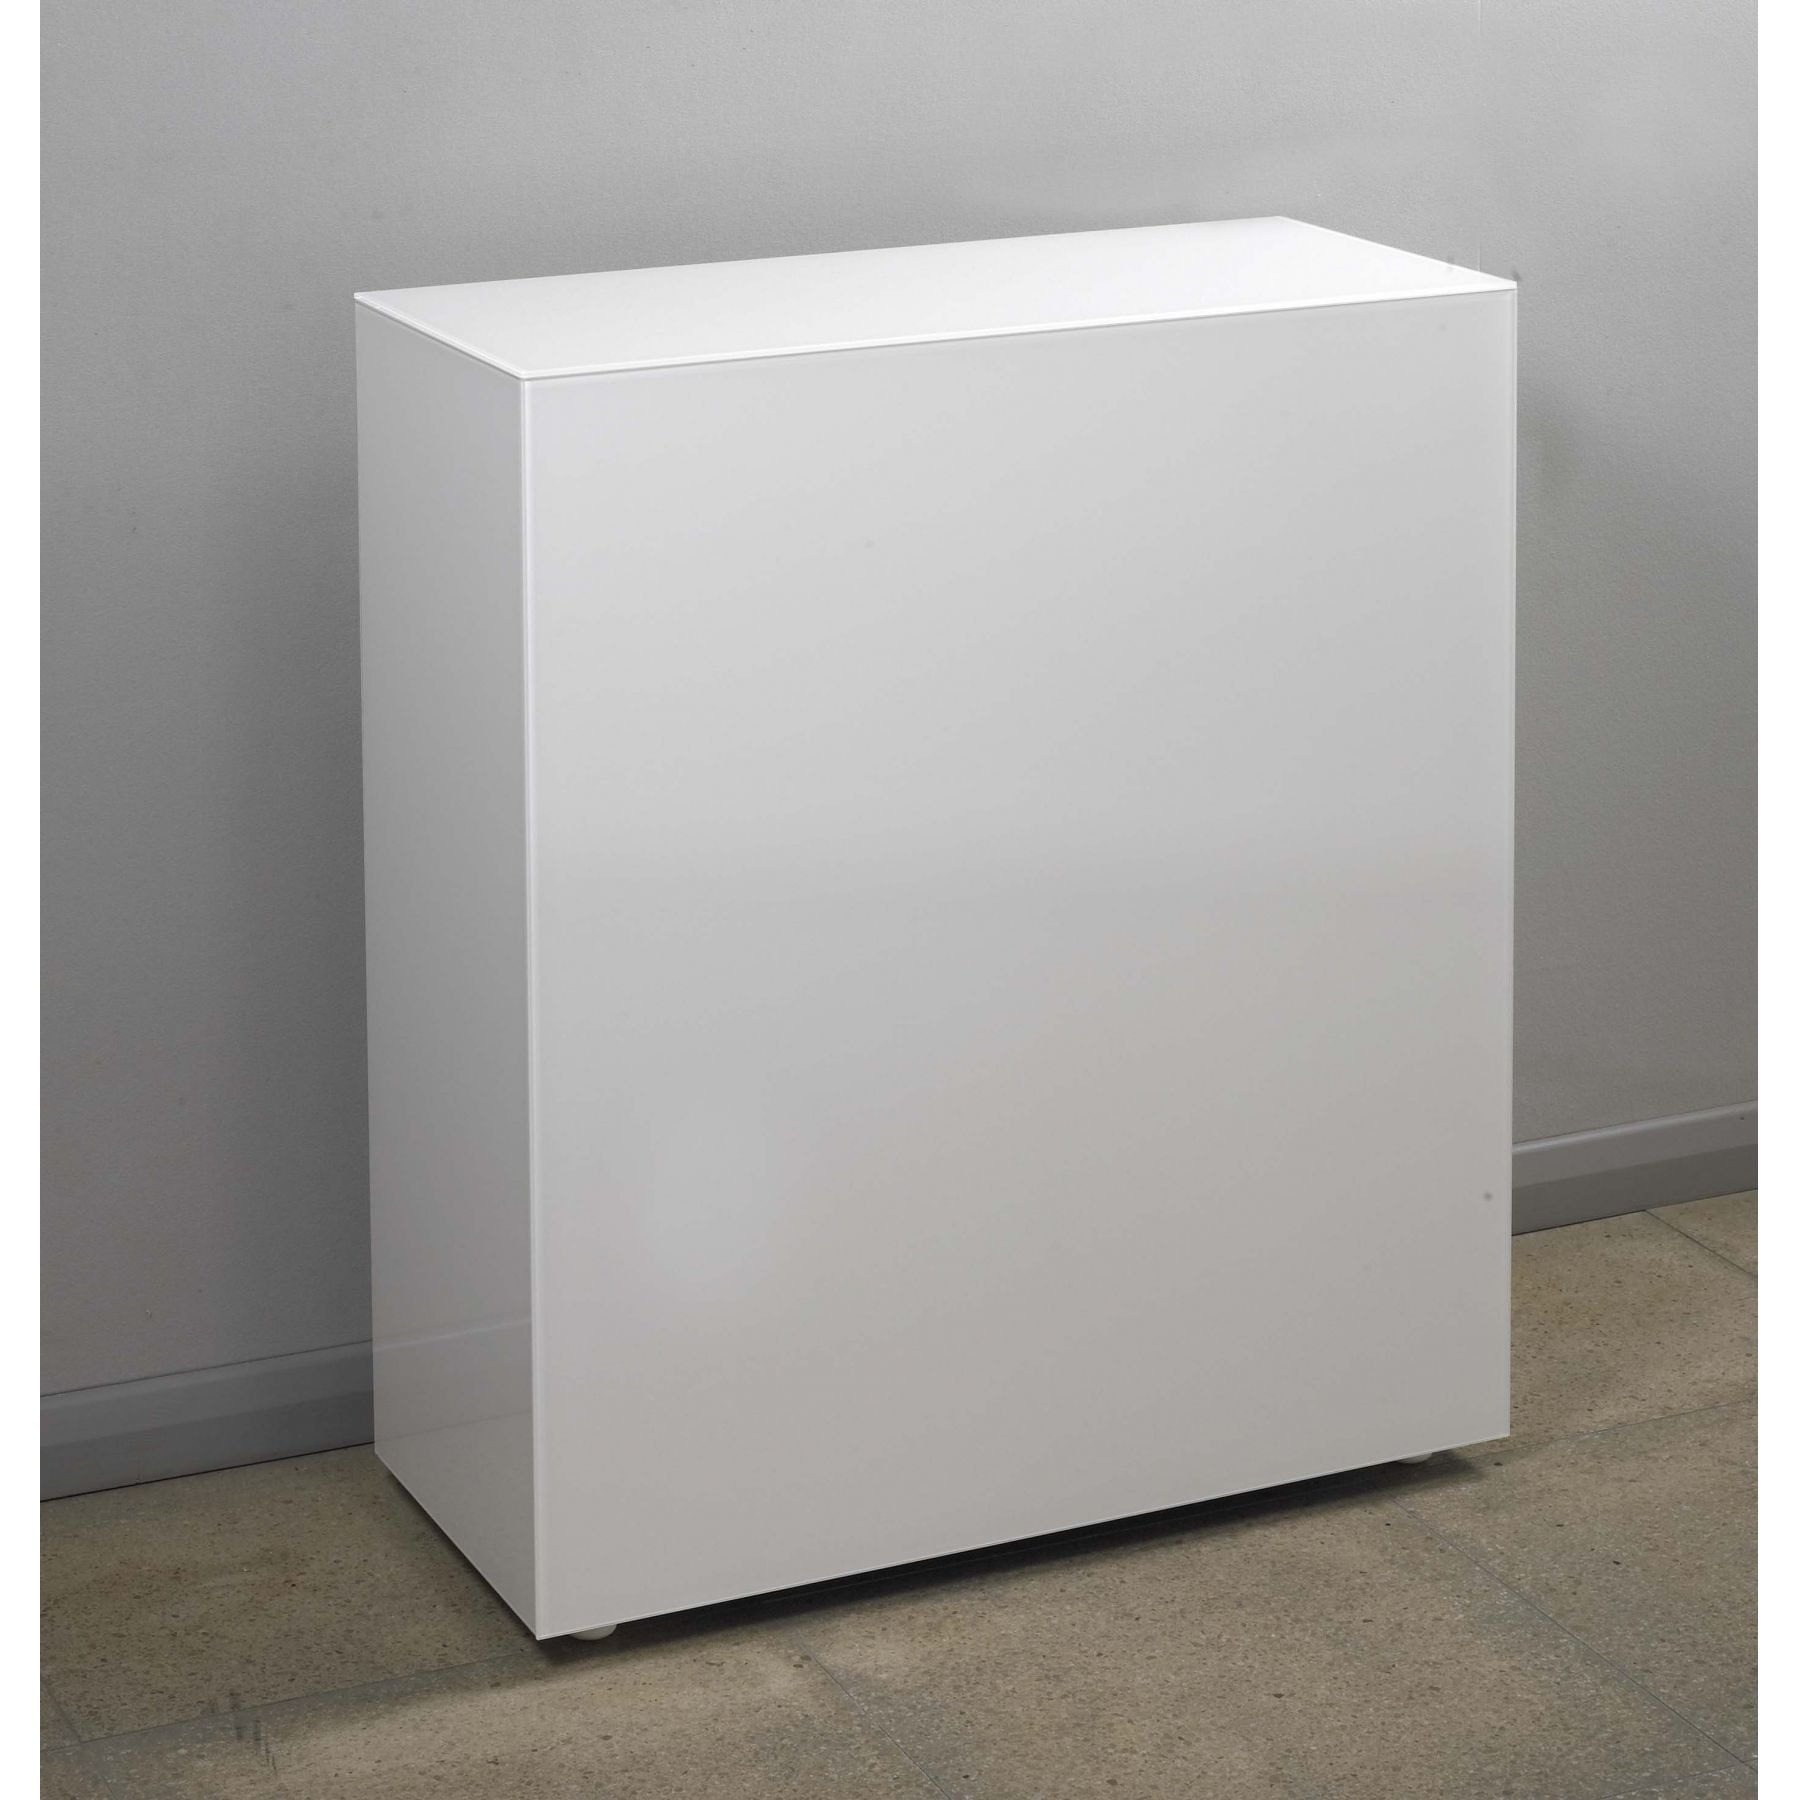 White Glass Cube. White Glass Cube   Glass Furniture from Homesdirect 365 UK